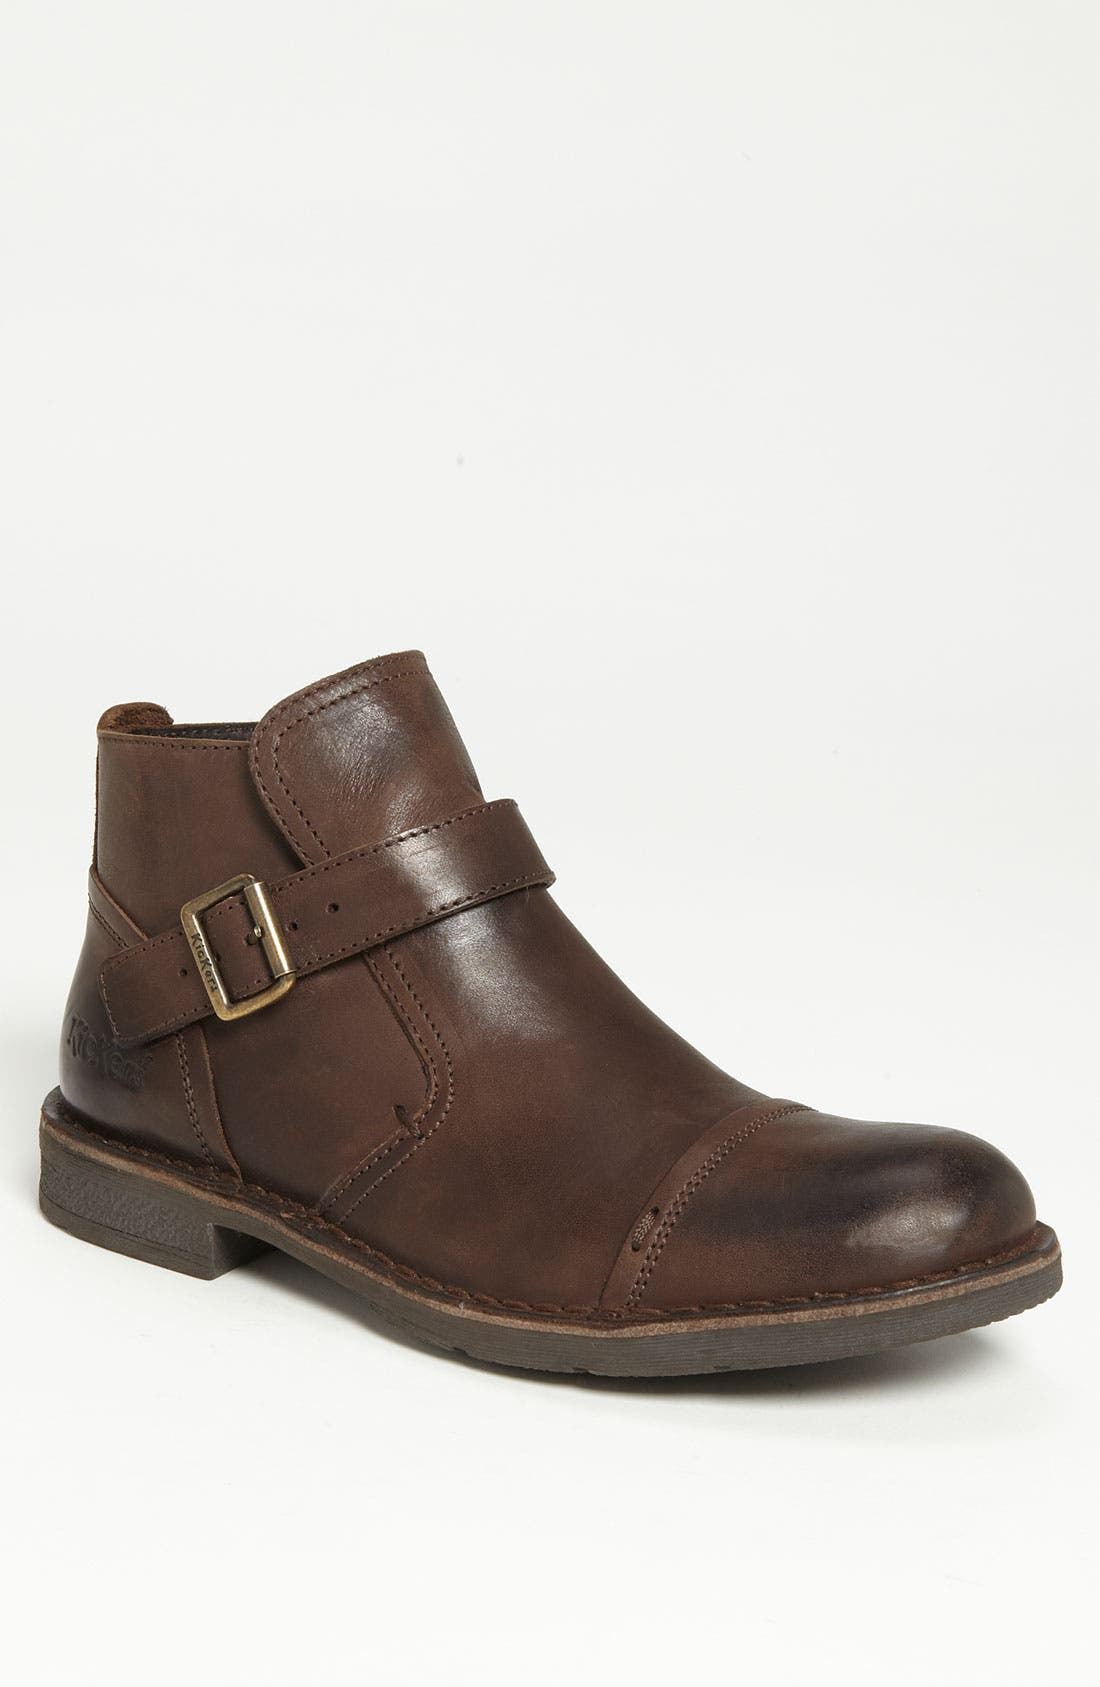 Alternate Image 1 Selected - Kickers 'Banjo' Cap Toe Boot